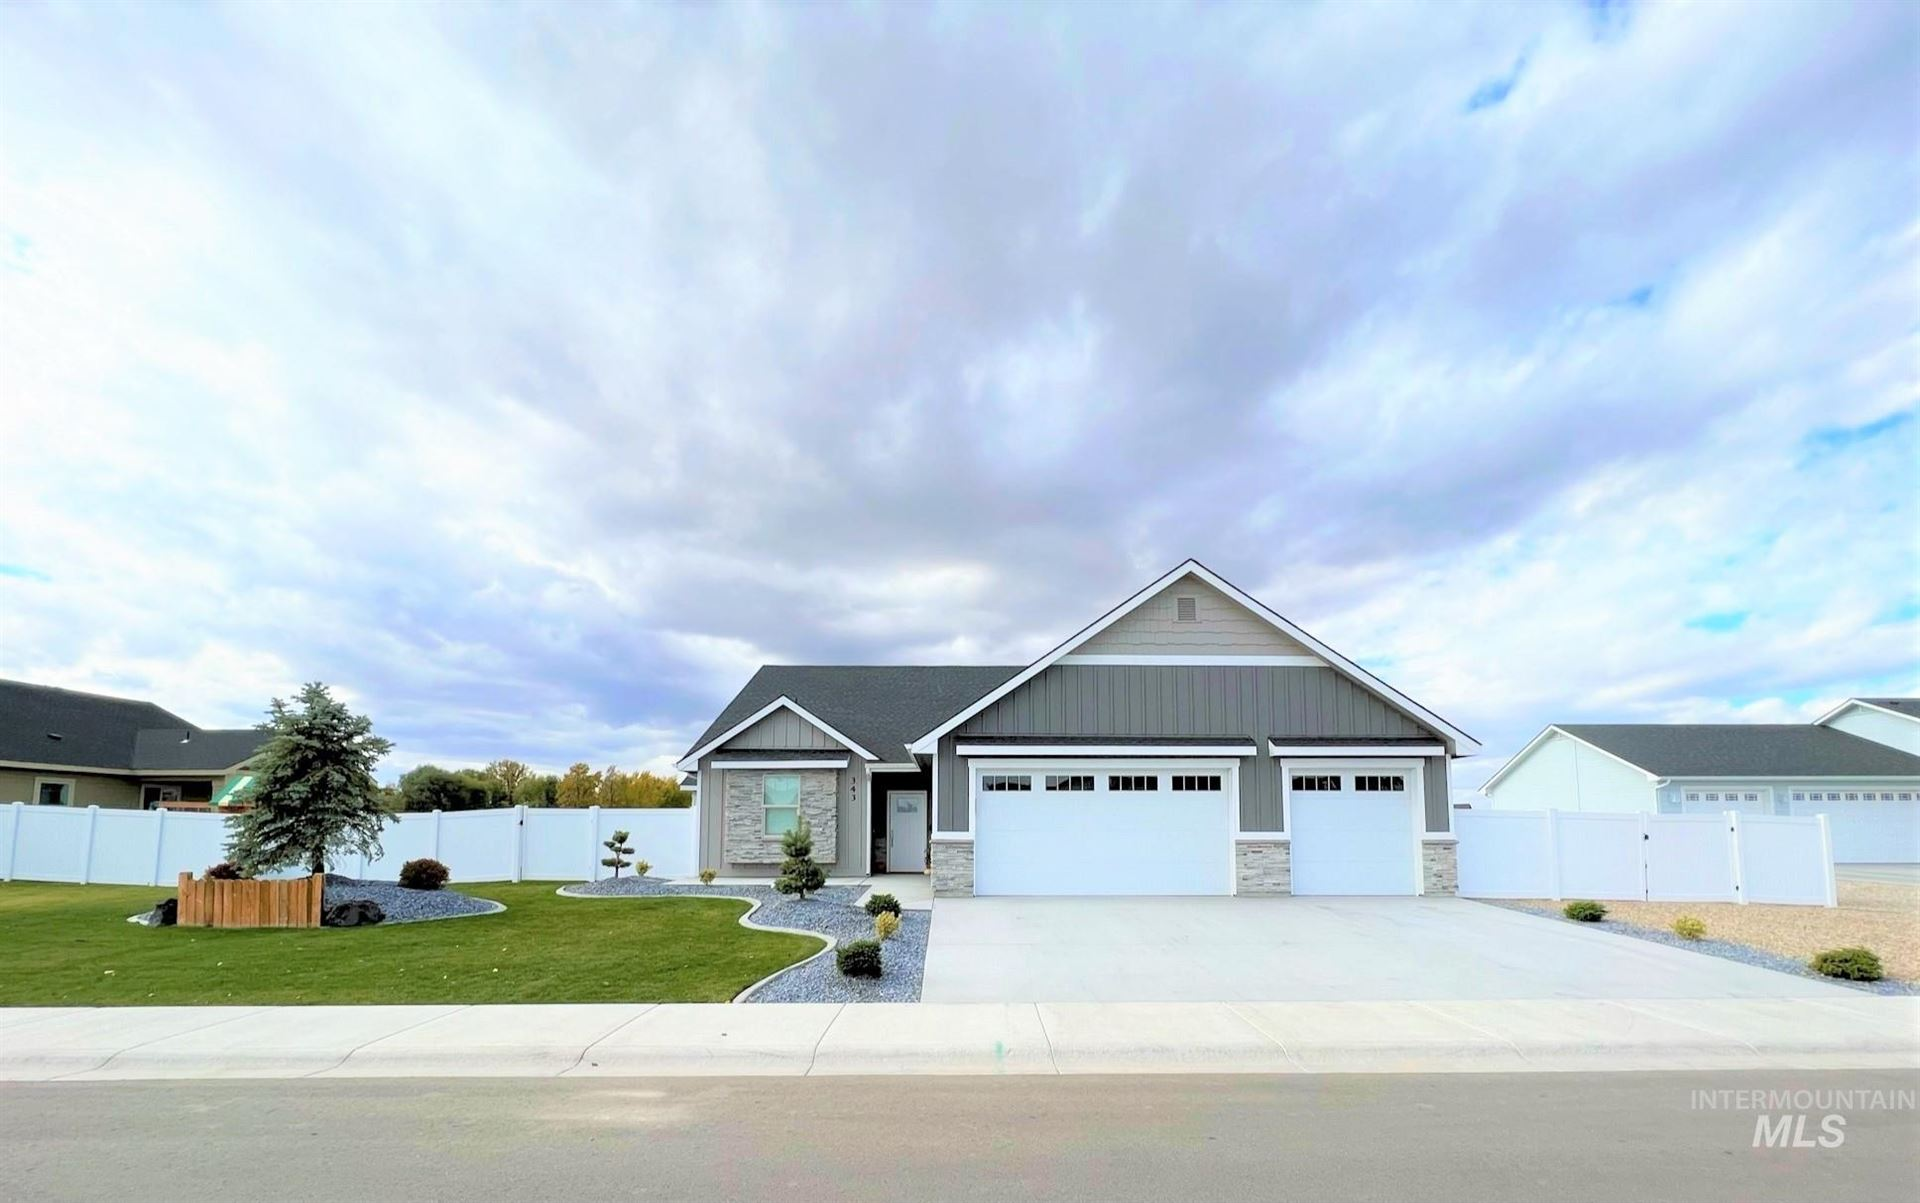 343 Grizzly Dr, Fruitland, ID 83619 - MLS#: 98822994